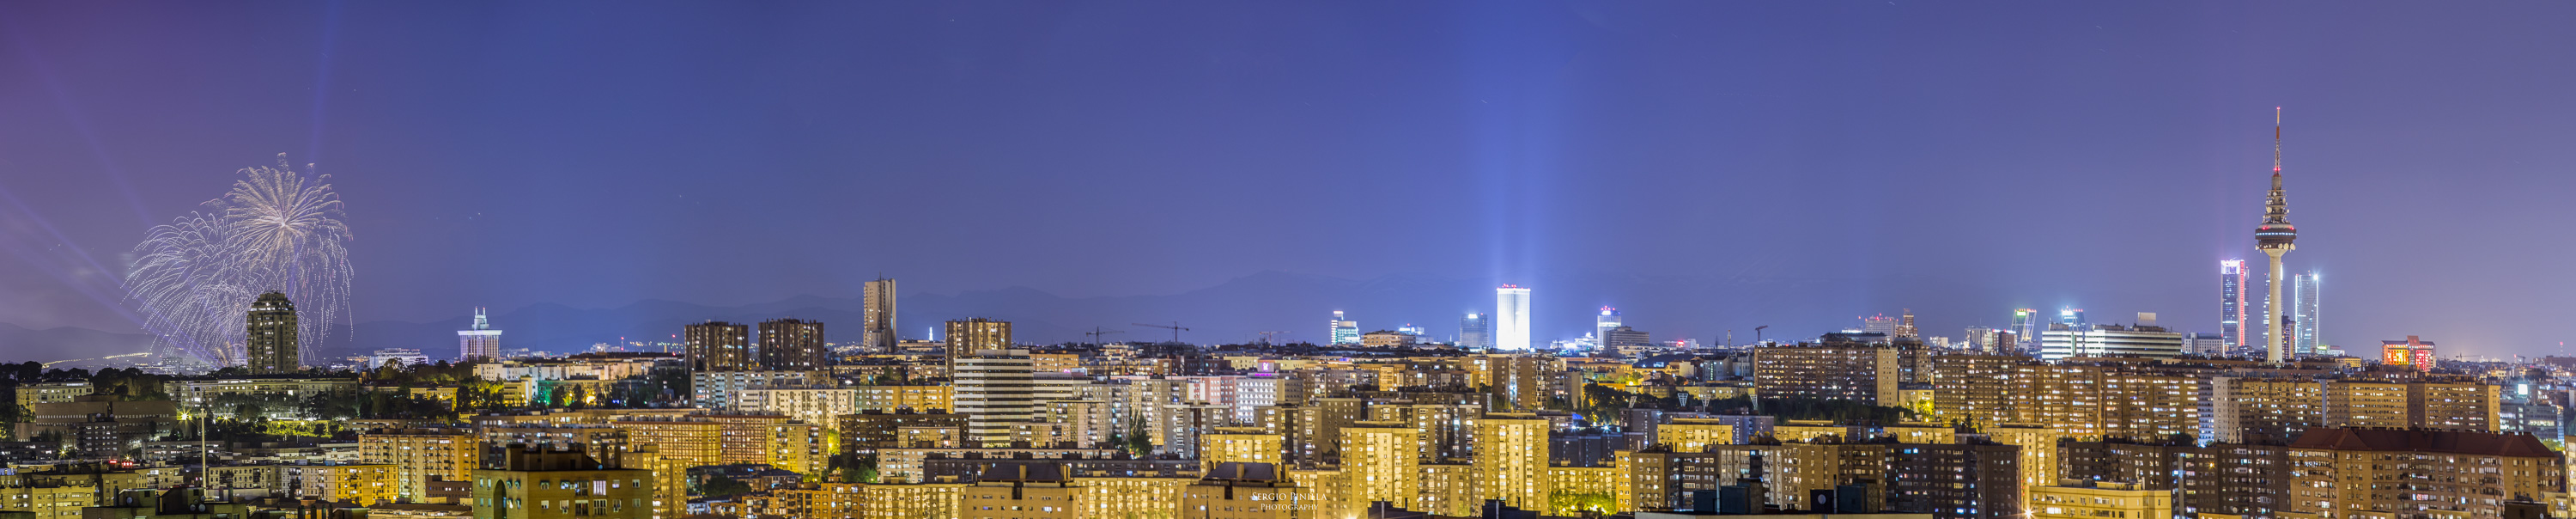 Skyline Madrid Nocturno